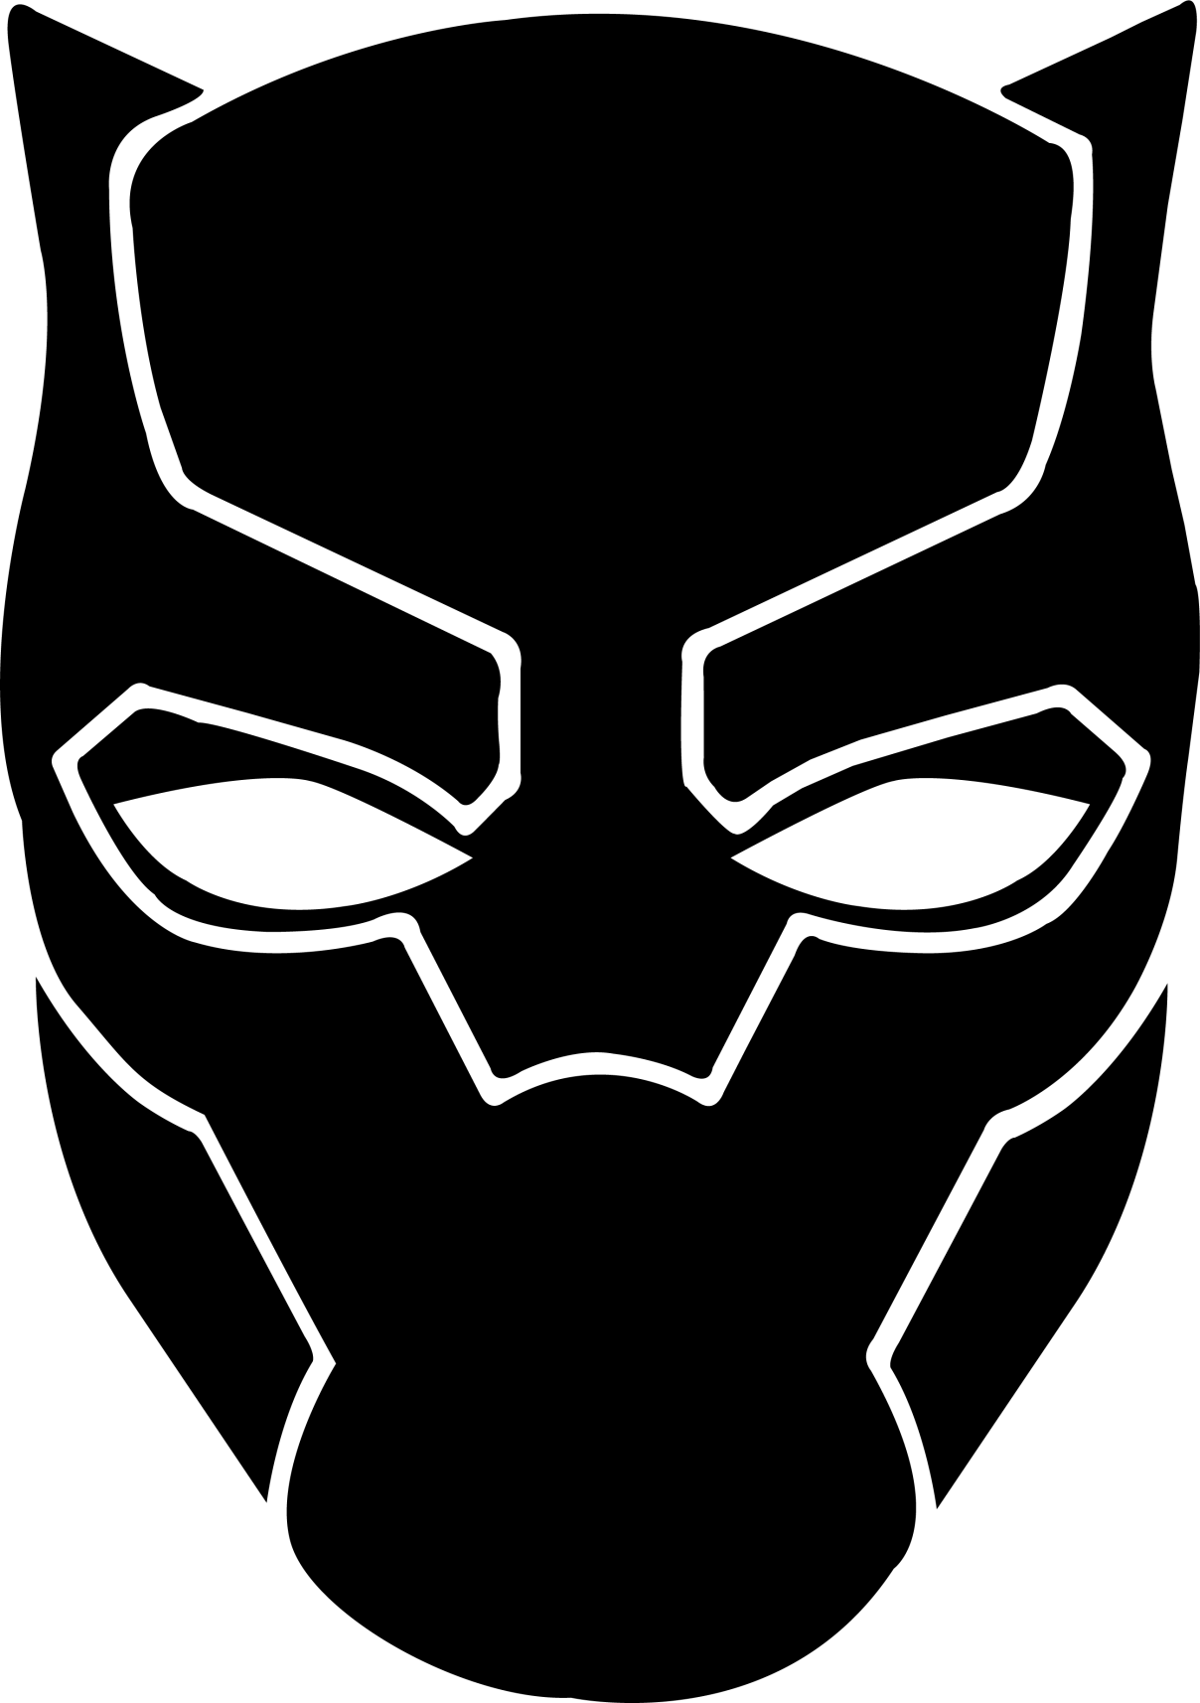 Black panther minimalist clipart picture royalty free Black panther logo clipart images gallery for free download | MyReal ... picture royalty free